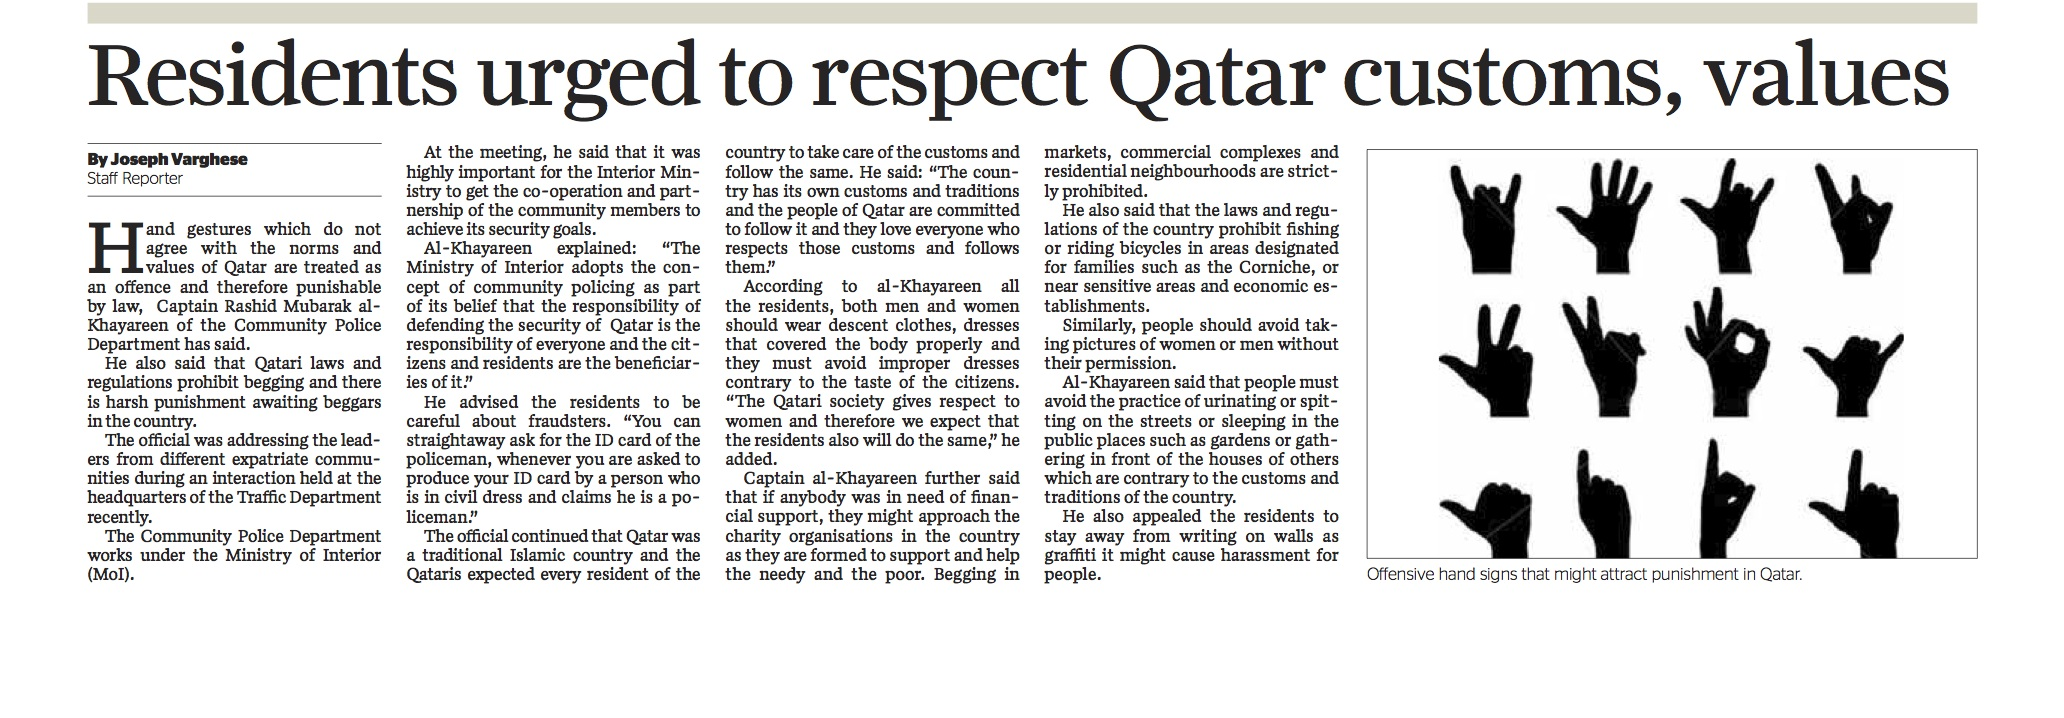 """A harsh reminder that I'm not as culturally-savvy as I thought I was. A wise woman once told me, """"You've got to learn to admit that you simply don't know what you don't know."""" ...  (article extracted from July 12, 2013 Gulf Times, athttp://www.gulf-times.com/qatar/178/details/359198/residents-urged-to-respect-qatar-customs%2c-values)"""